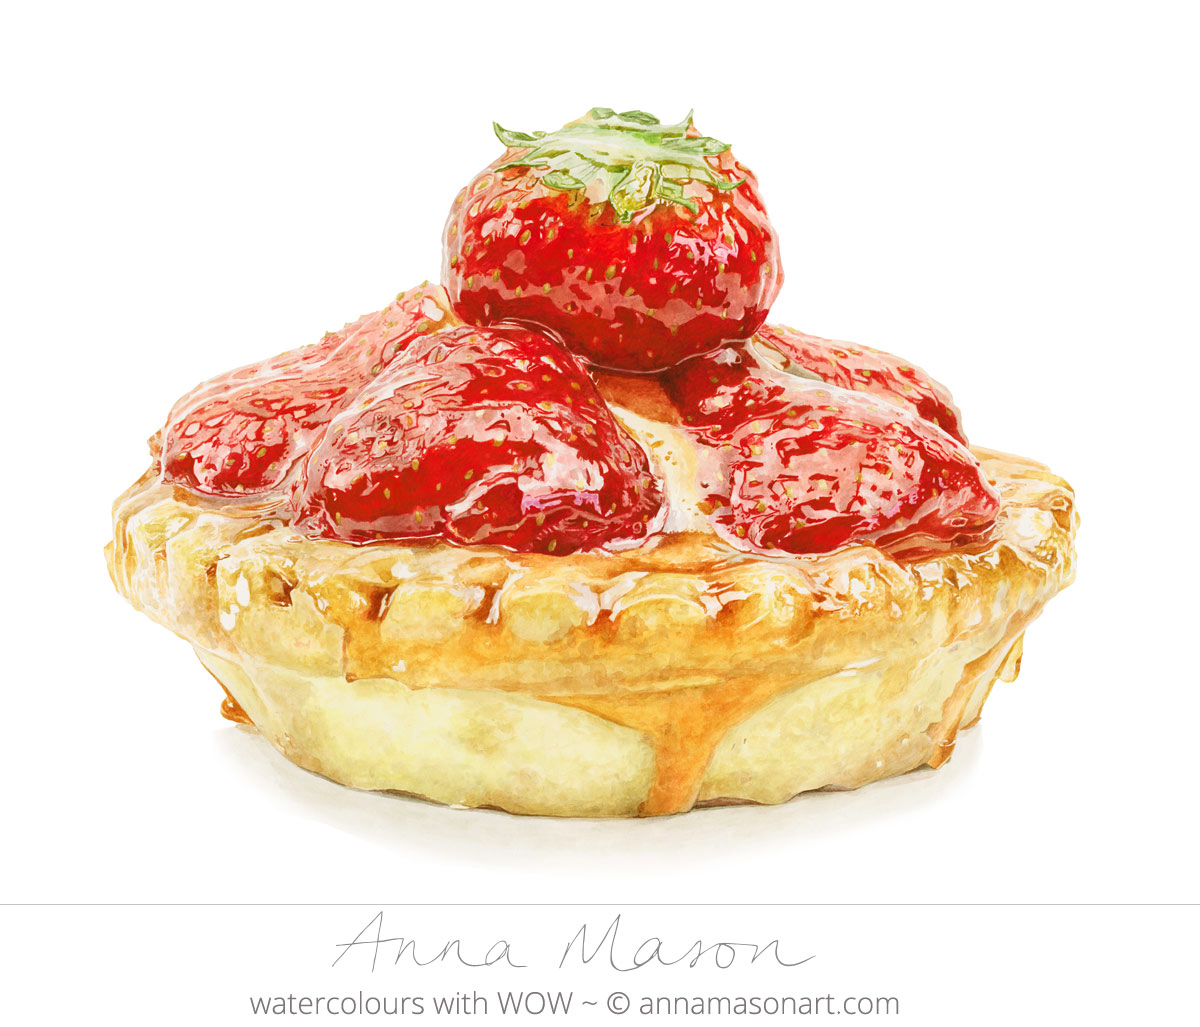 Doodlewash - Watercolor painting by Anna Mason of strawberry tart dessert